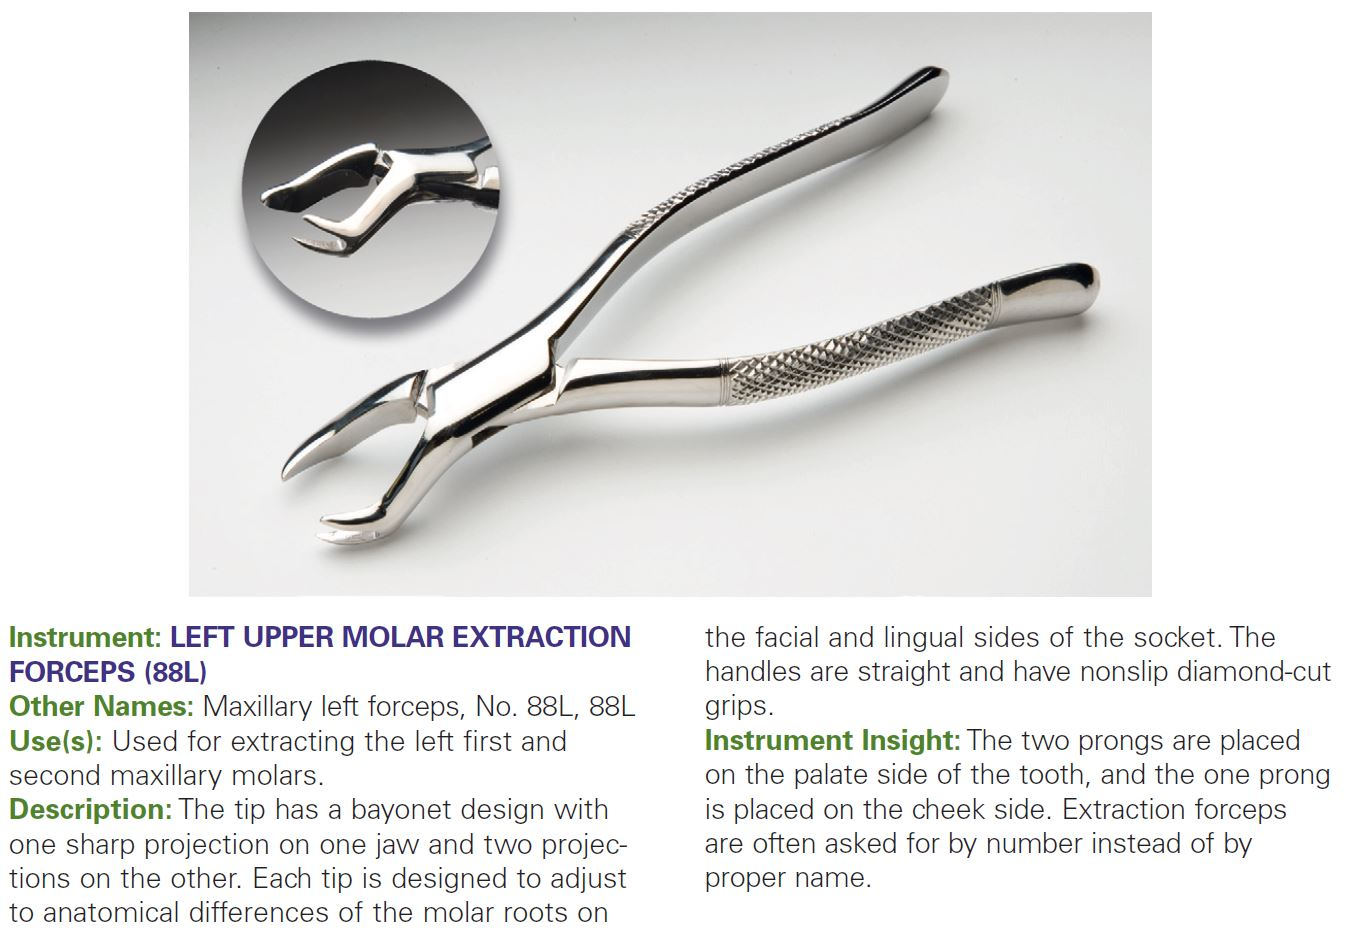 LEFT UPPER MOLAR EXTRACTION FORCEPS